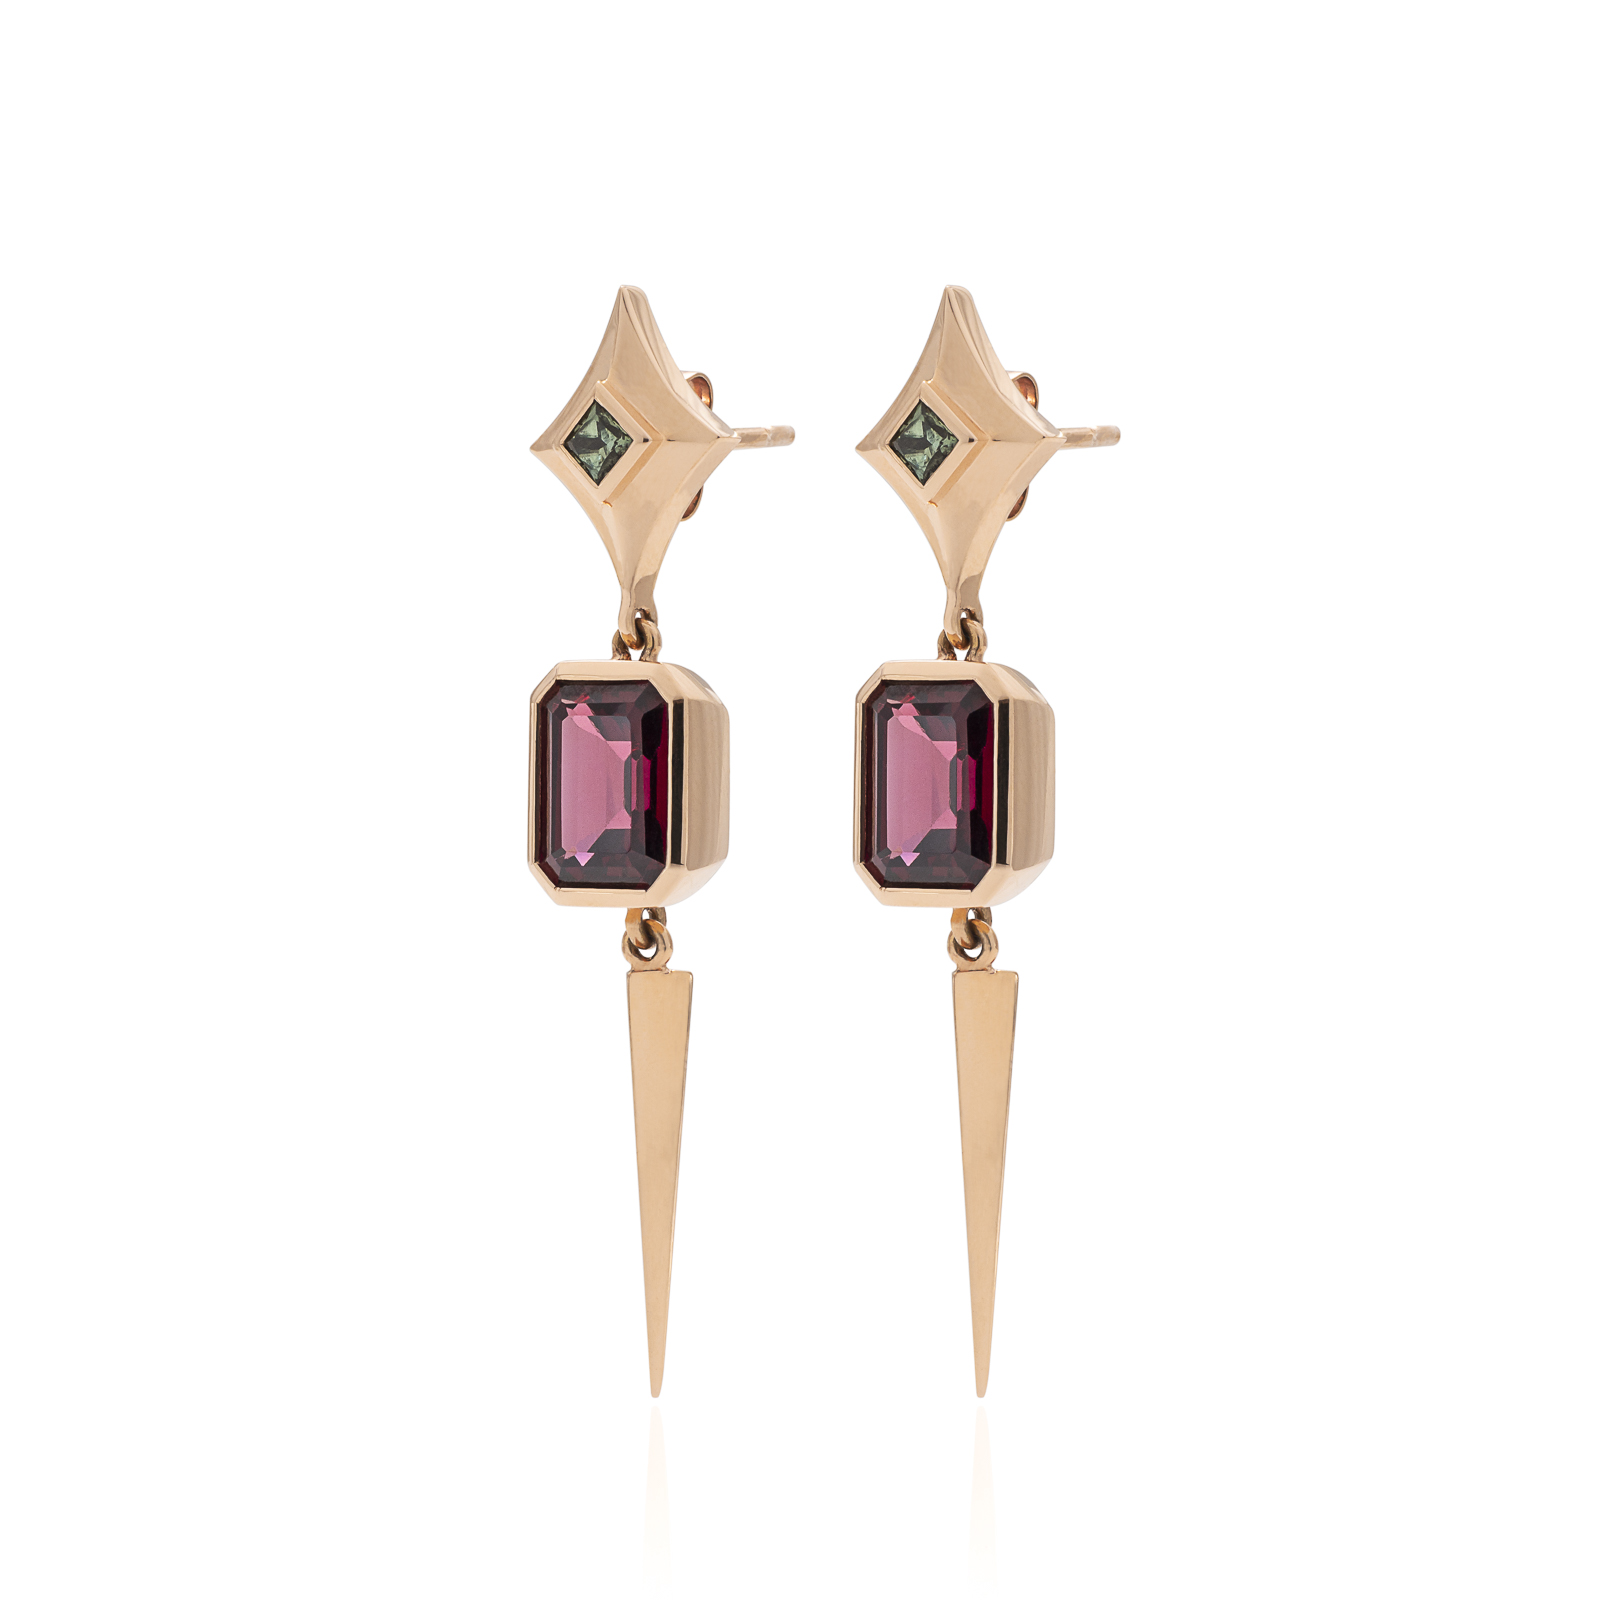 War Cry - Rhodolite garnets (5.55ct) from Mozimbique and Australian green sapphires set in 18k rose gold with tetrahedron tasselsThese earrings are a tribute to the battle cry of 'truth' that is chanted amongst my fellow badass warrior women.